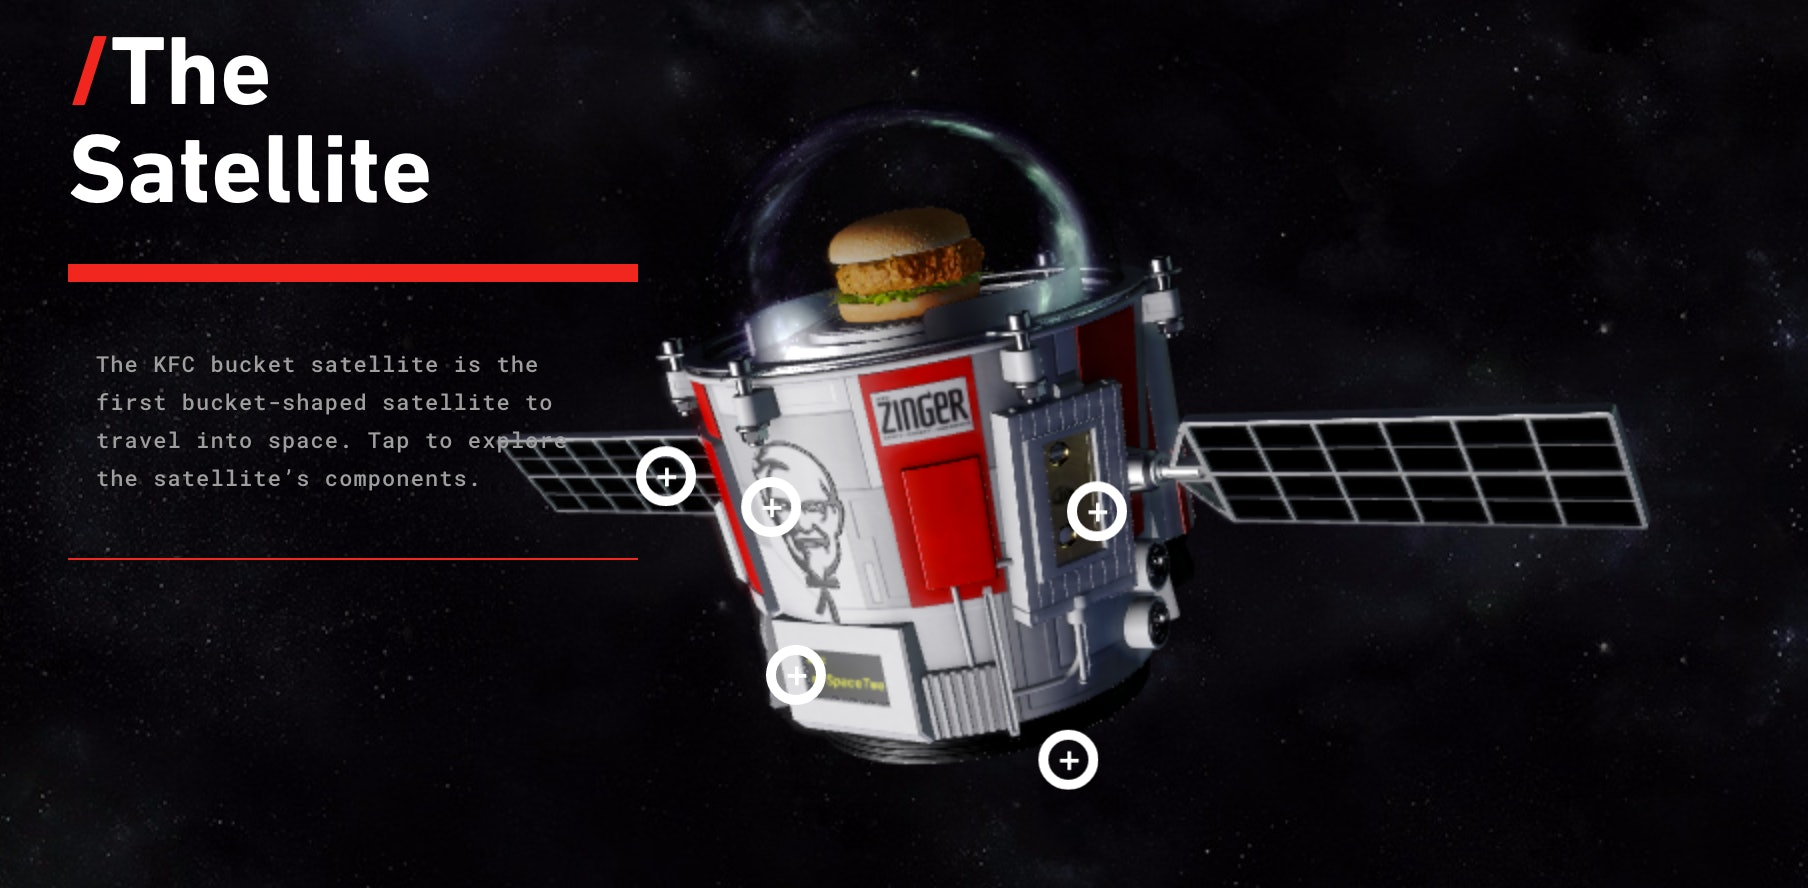 KFC space zinger chicken sandwich satellite earth